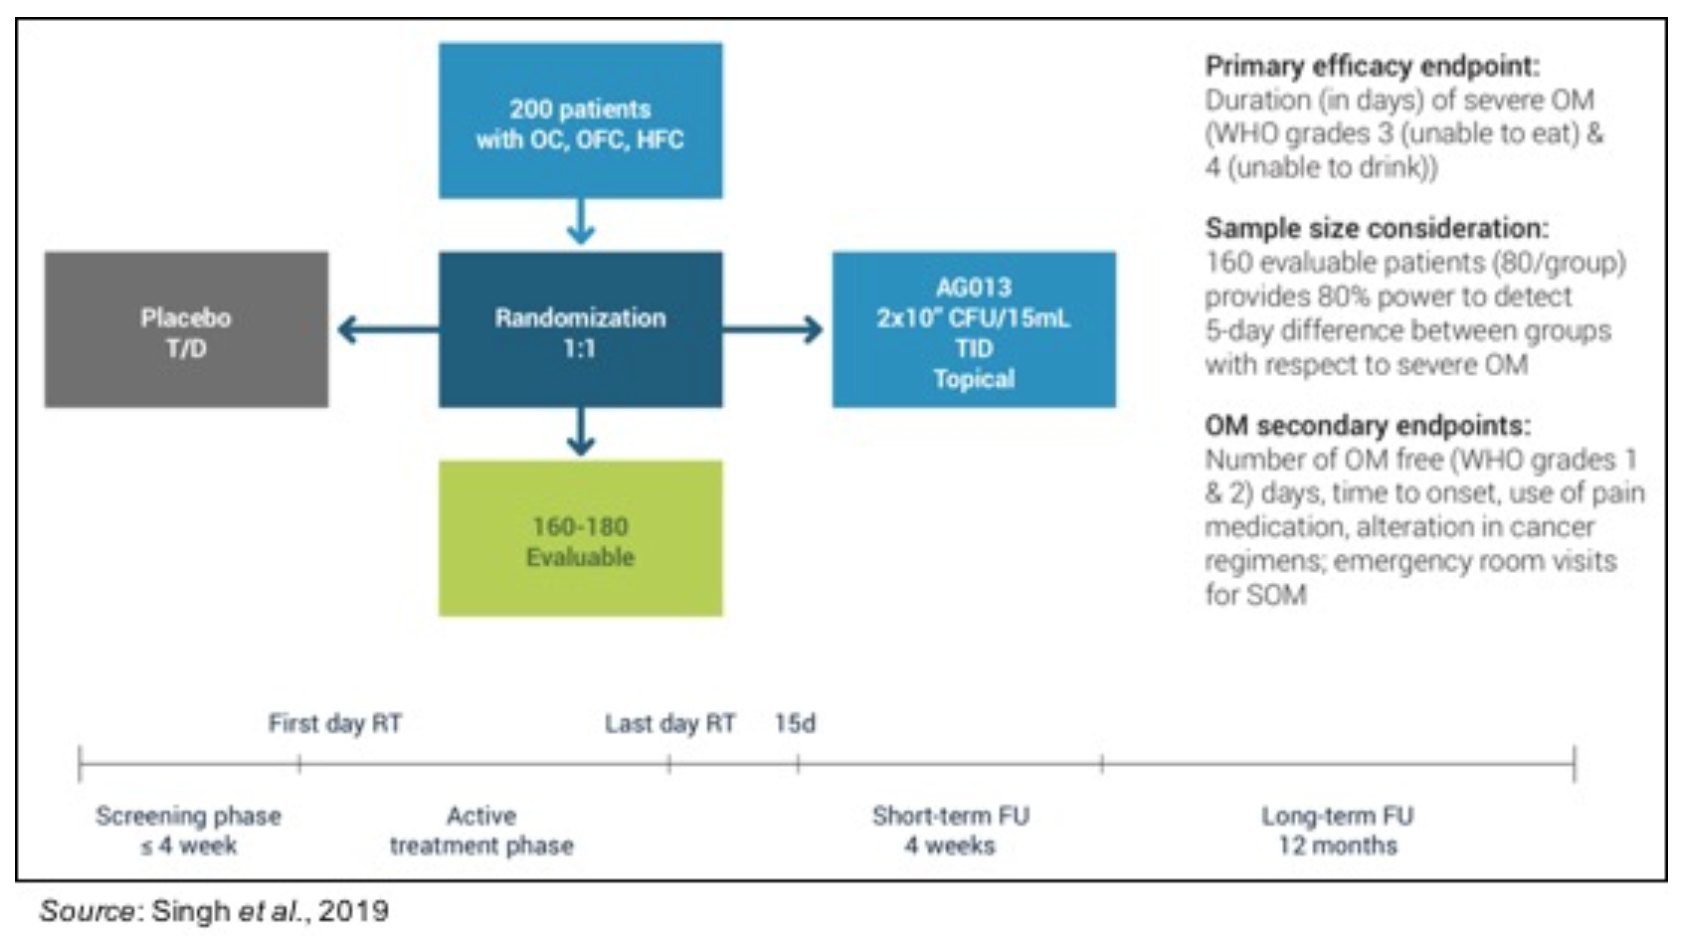 OGEN: Results from Phase 2 Trial of AG013 in Early 2Q20…